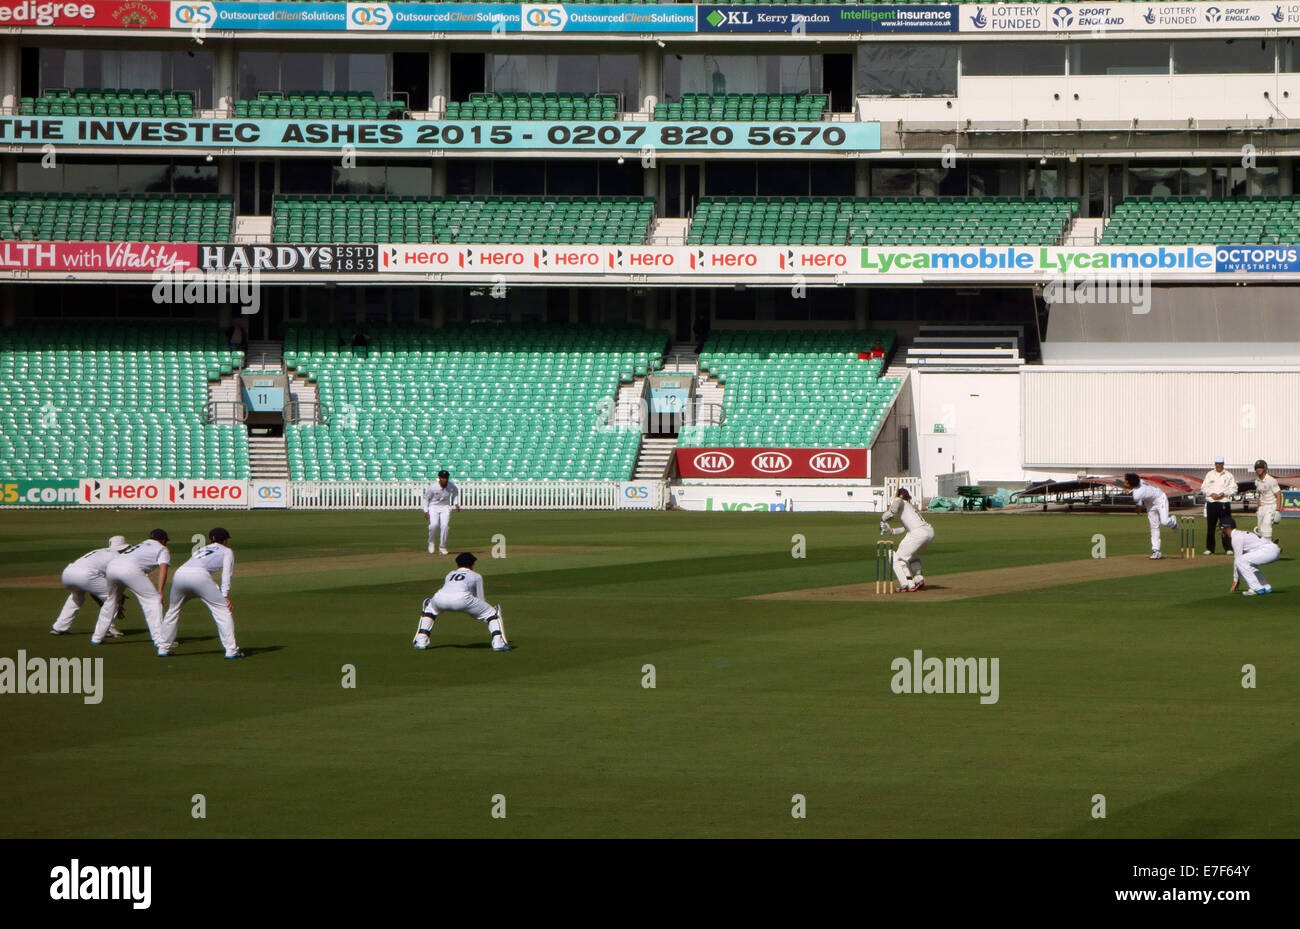 County cricket match at The KIA Oval ground in London - lack of spectators - Stock Image